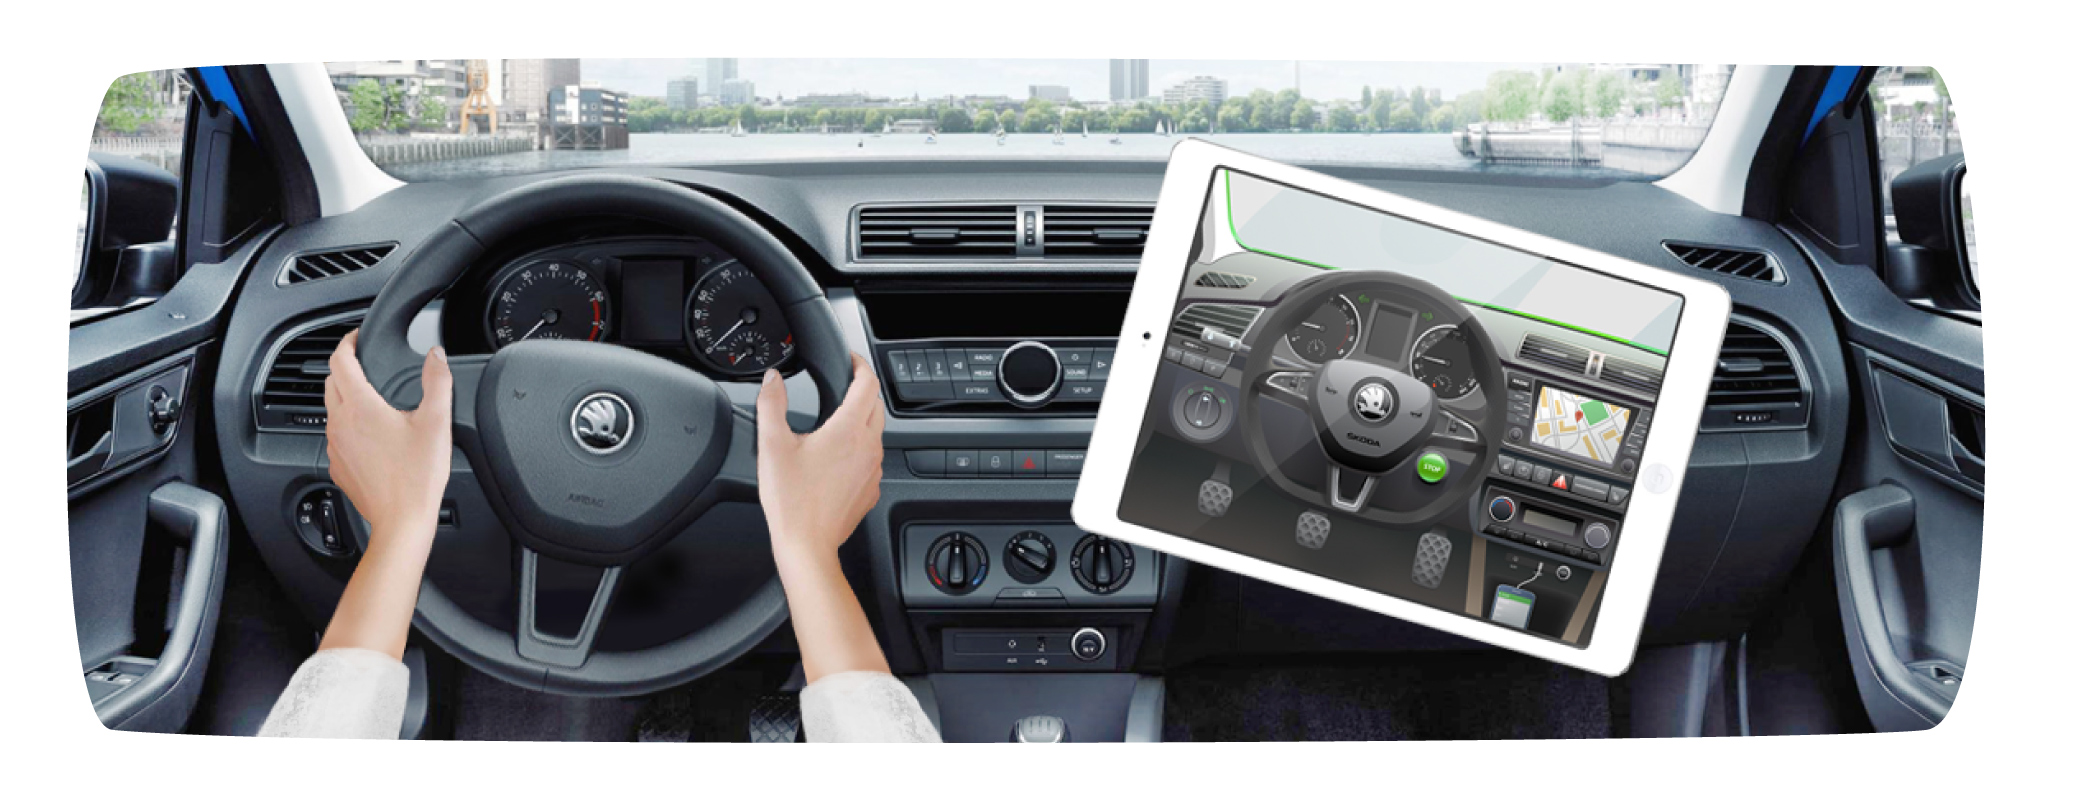 Škoda and Bamboo Apps: Little Driver (Sponsored)